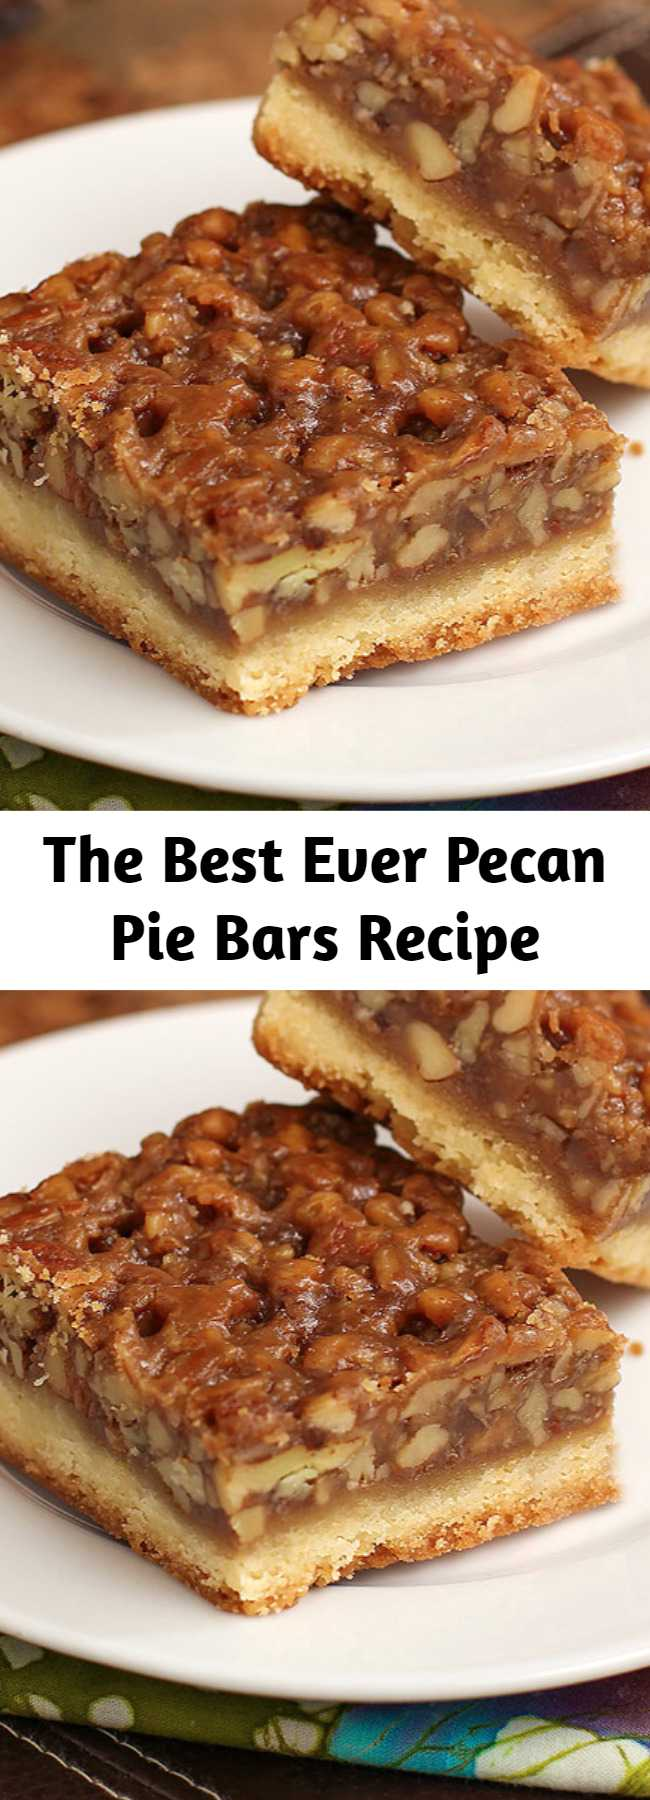 The Best Ever Pecan Pie Bars Recipe - The Best Ever Pecan Pie Bars are so good people offer to pay me for them. A fabulous recipe with a caramelized pecan pie set atop a shortbread crust is the absolute perfect nut bar. My family requests more of this dessert than any other every year. #desserts #pecanpie